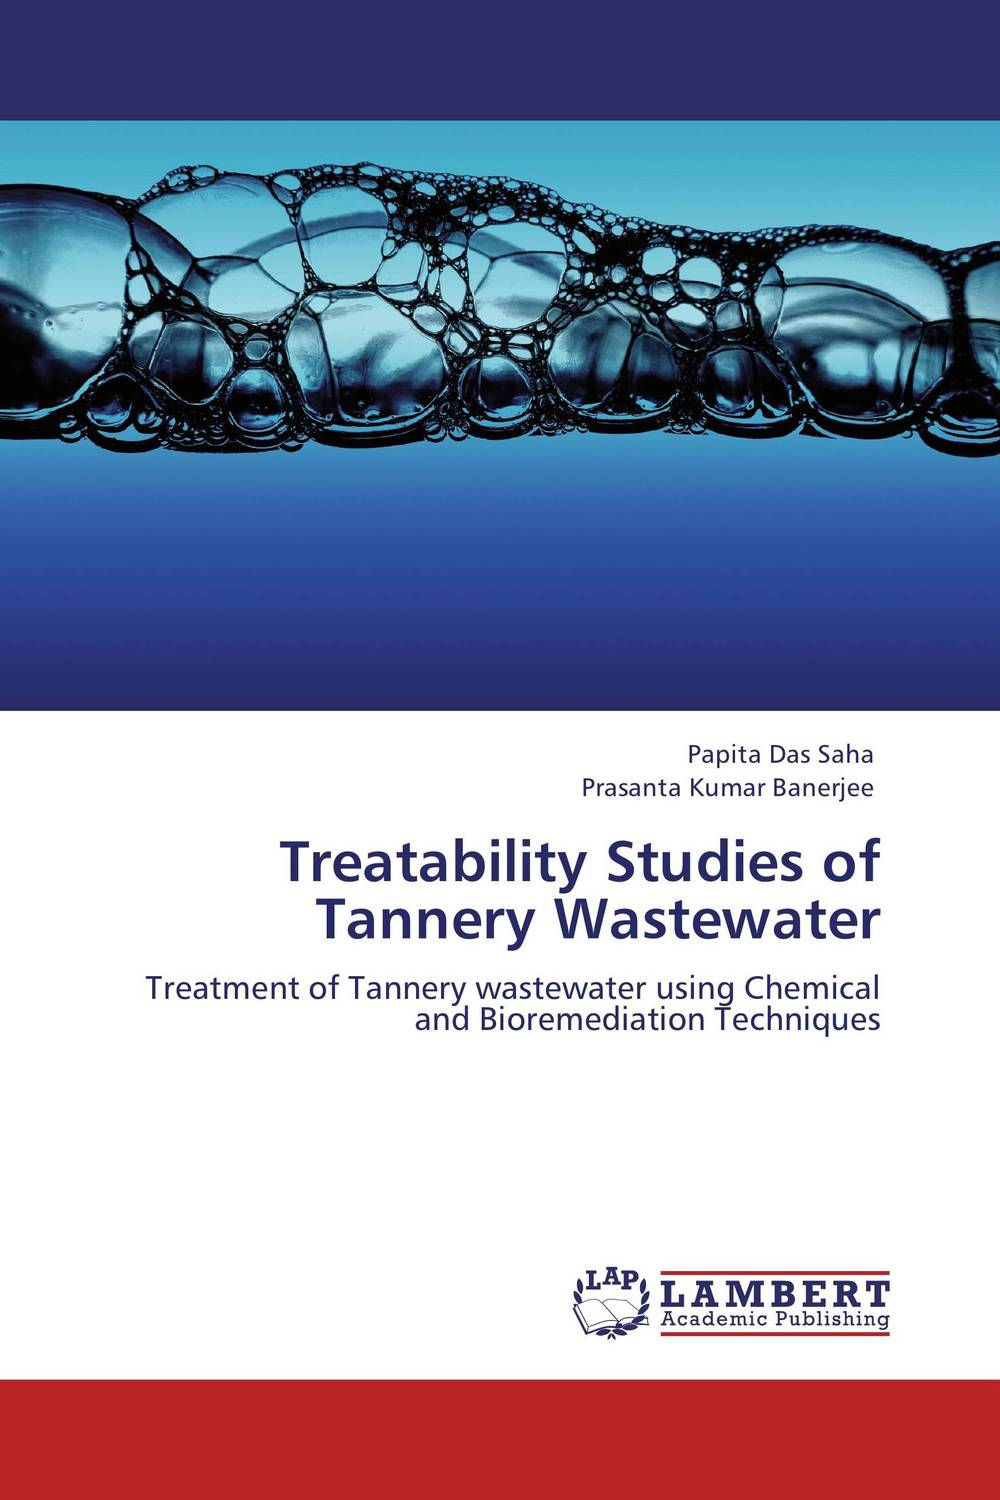 Treatability Studies of Tannery Wastewater купить